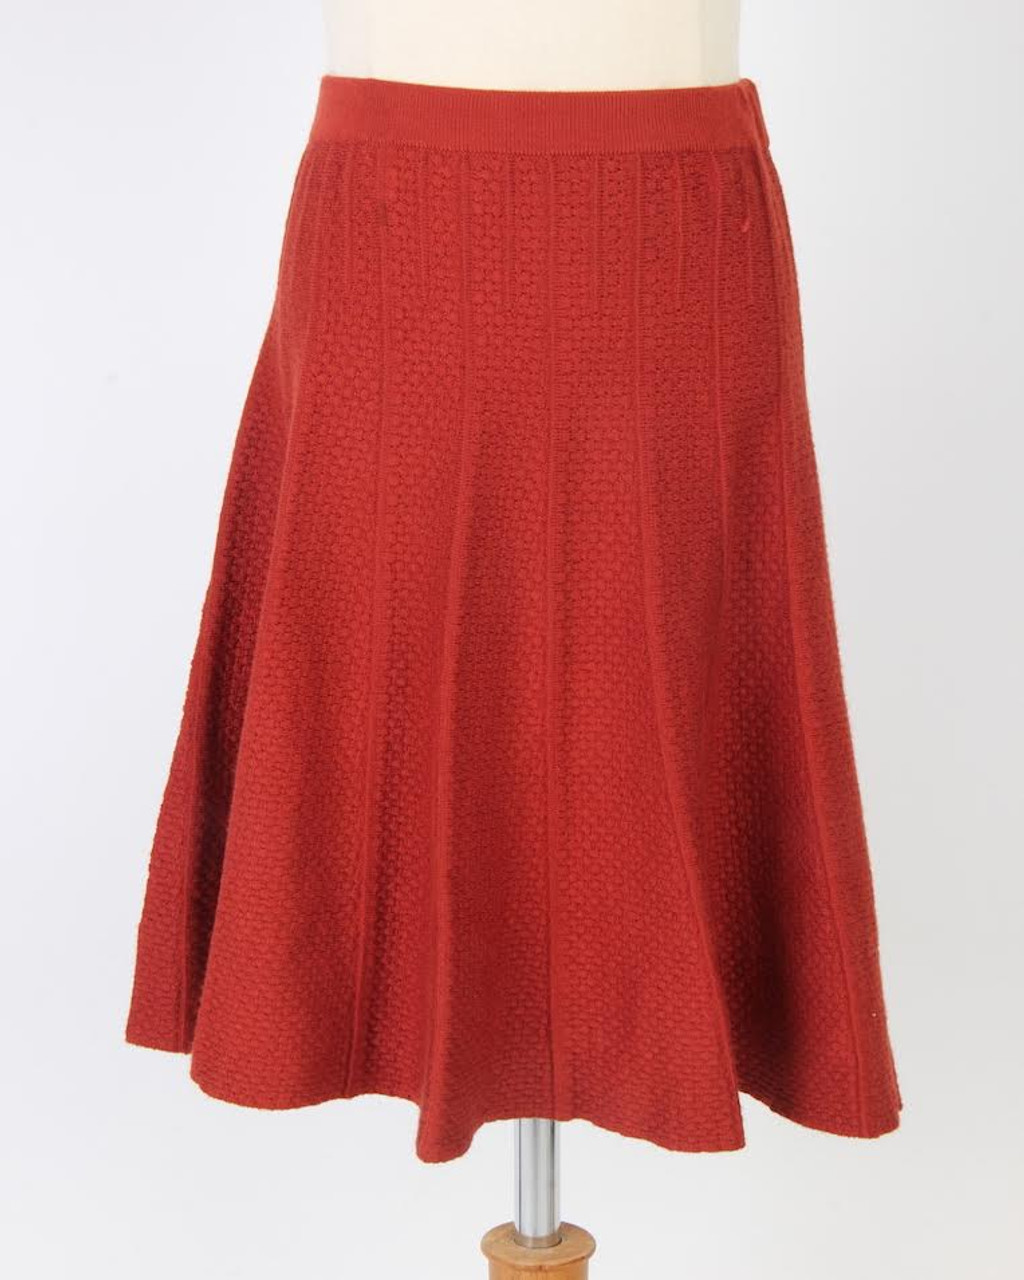 BGDK Girls Basket Weave Skater Skirt